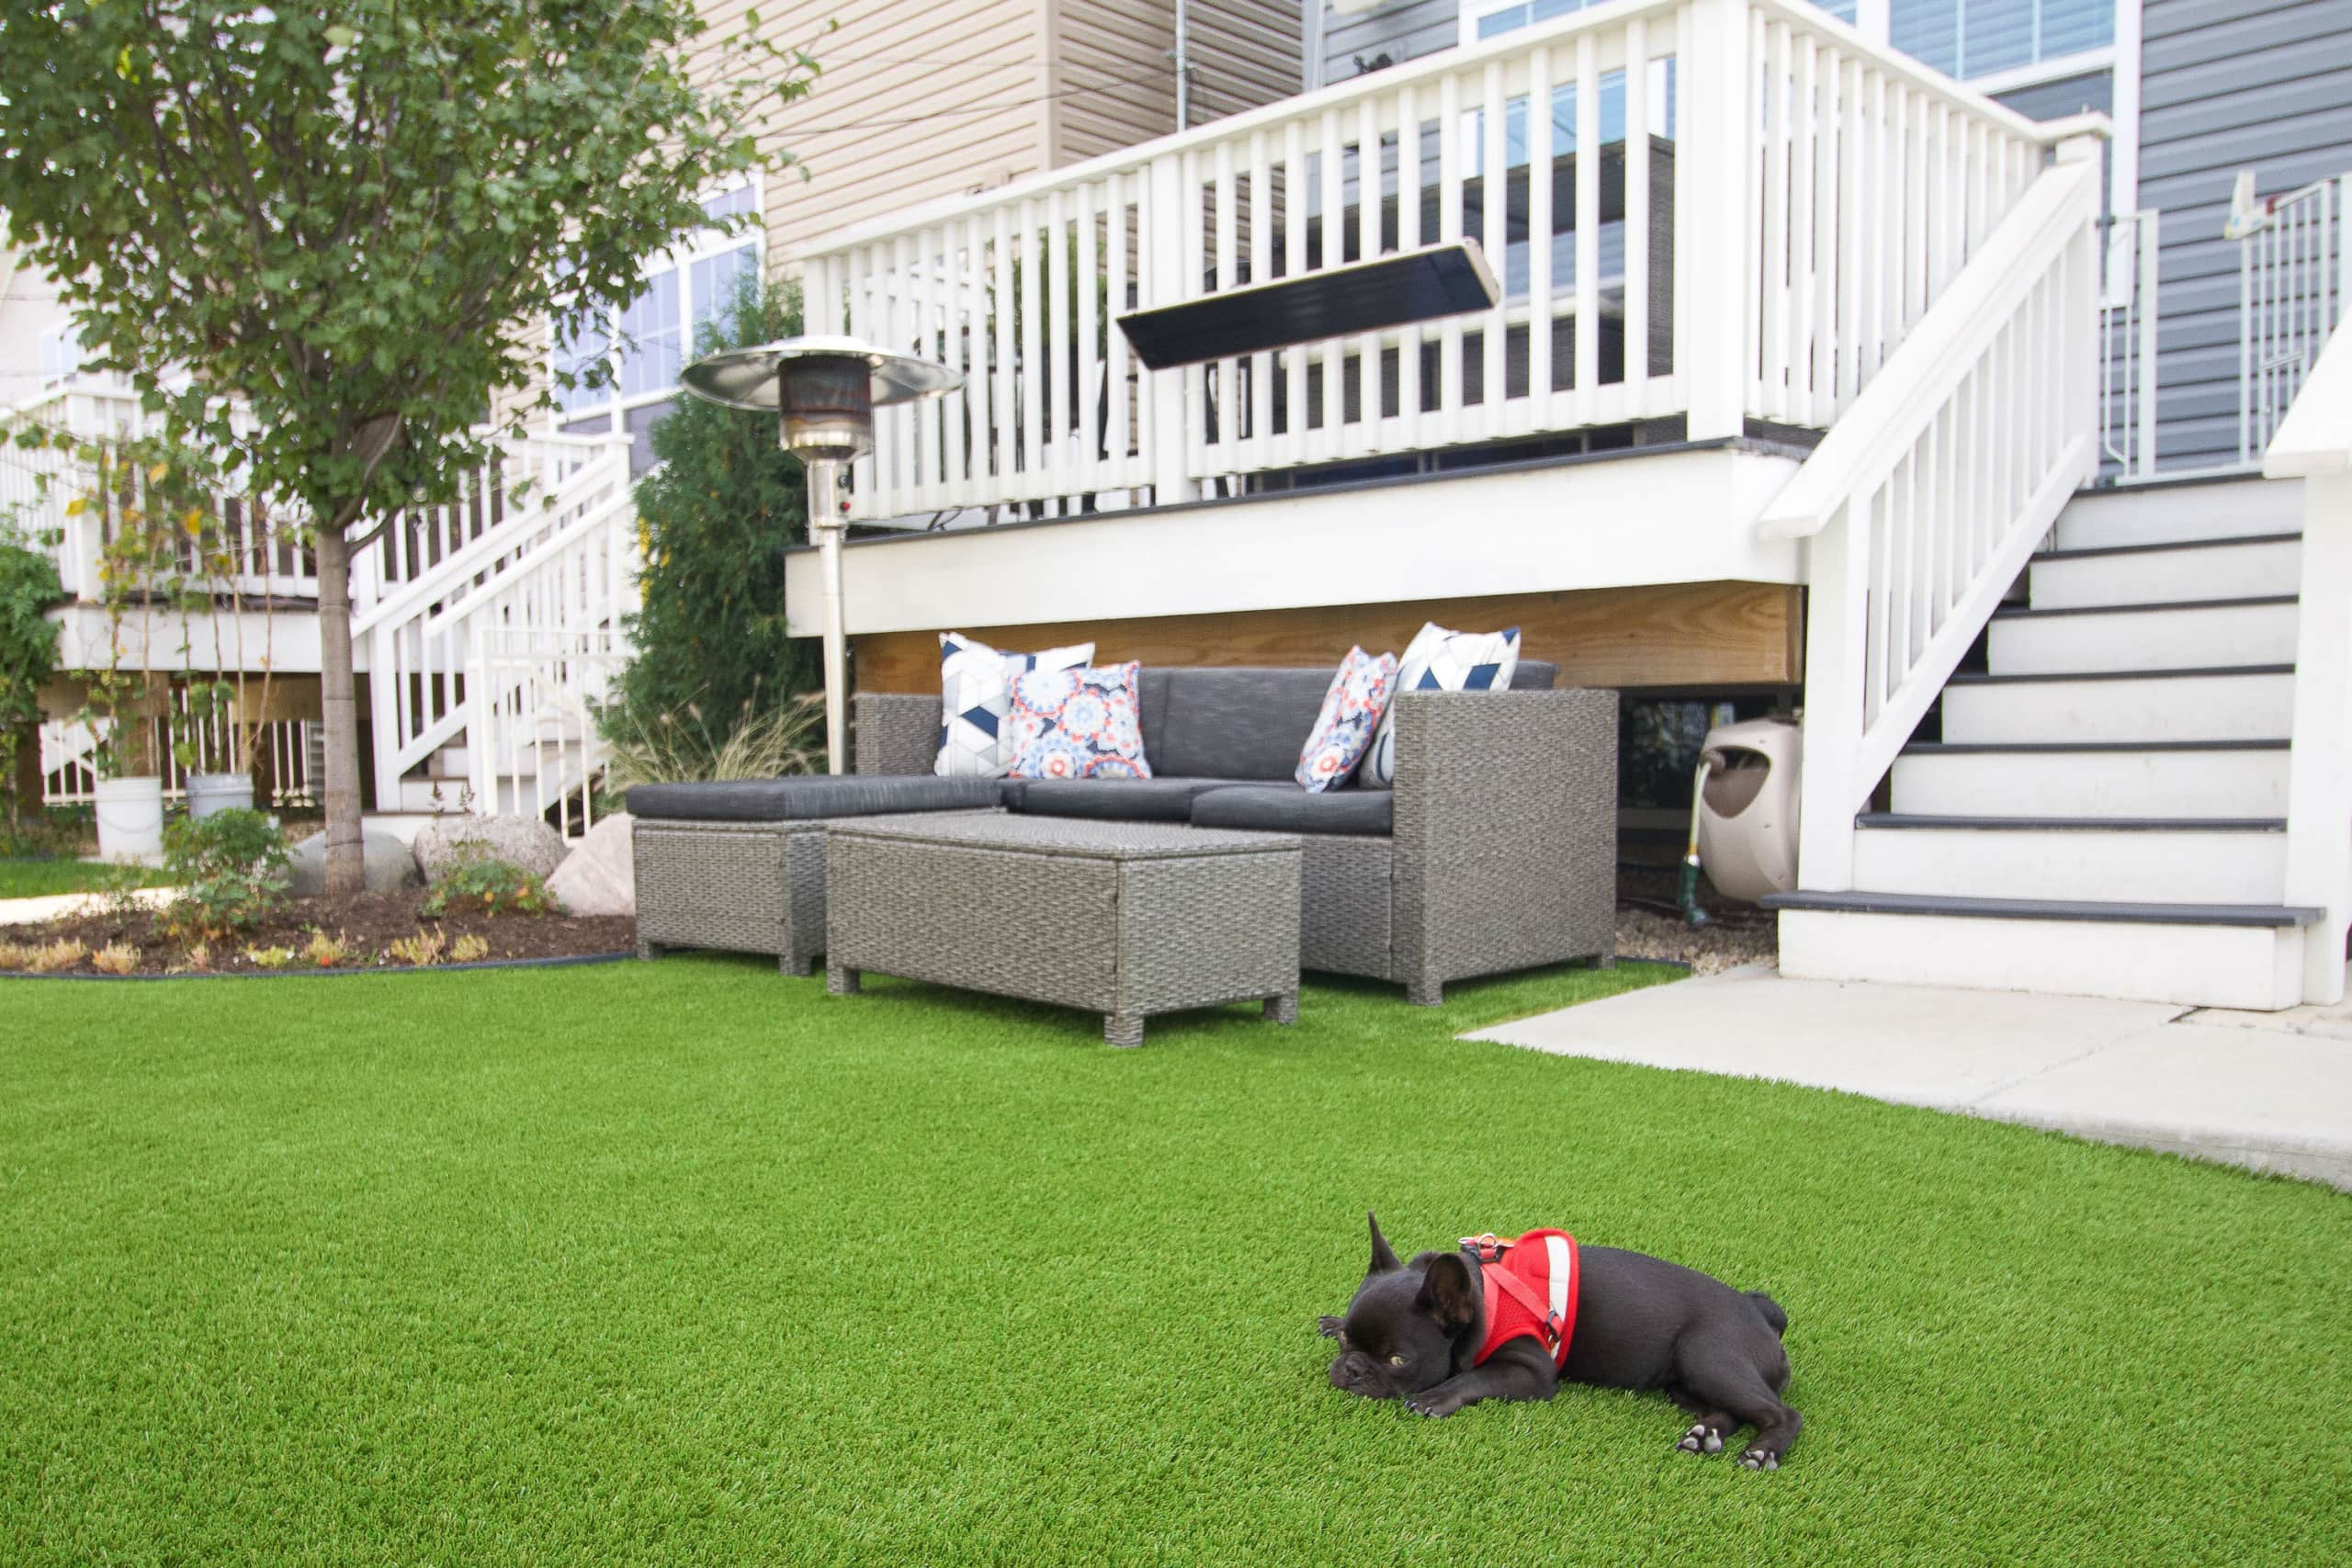 Adding turf to your backyard